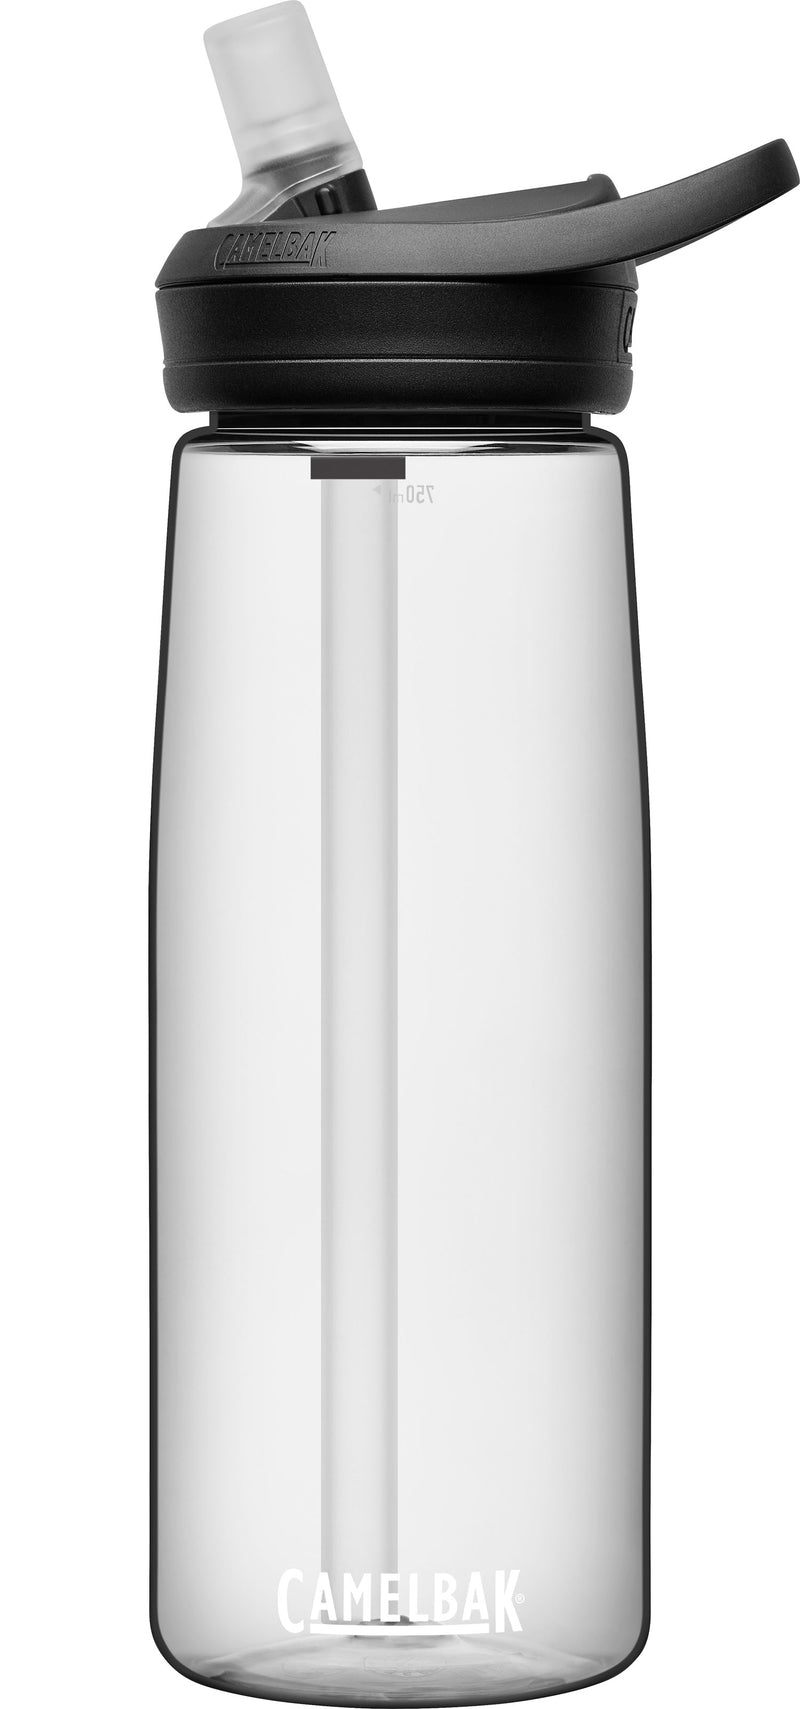 Clear .75 Litres CamelBak Eddy+ Water Bottle